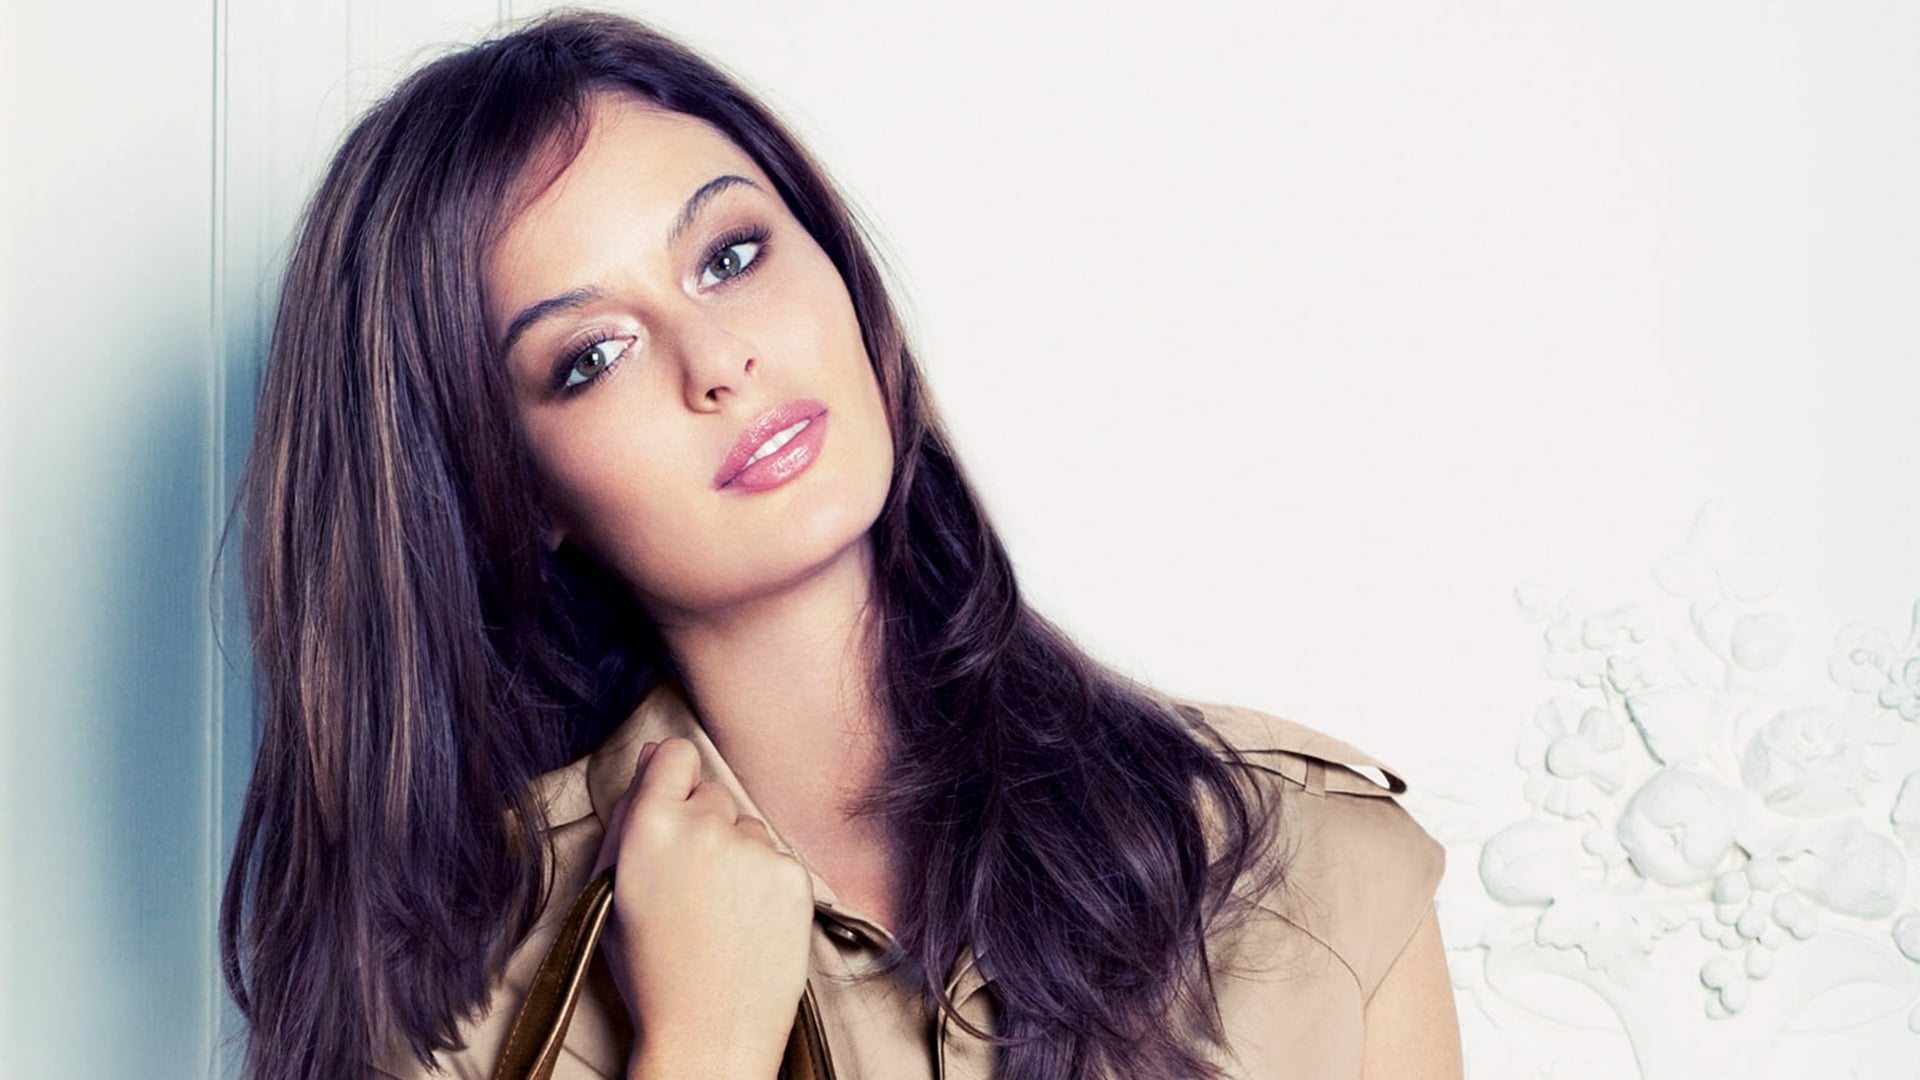 20 Nicole Trunfio Wallpapers Hd Free Download